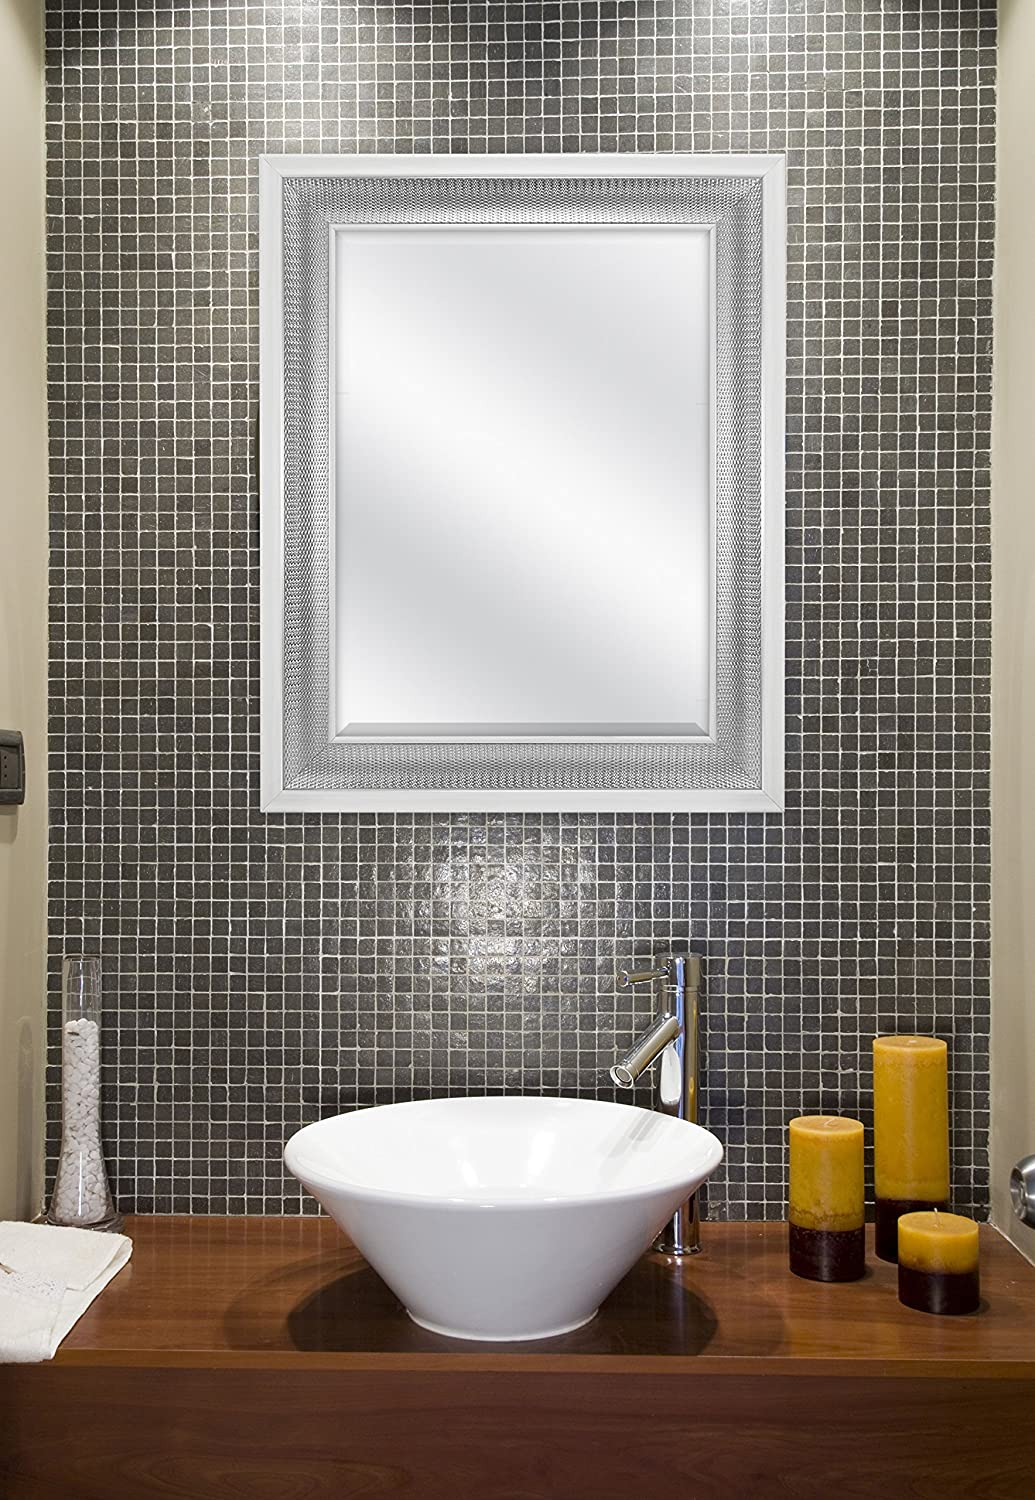 Silver 83041 24.5x30.5 Inch Overall Size MCS 18x24 Inch Embossed Droplet Wall Mirror MCS Industries